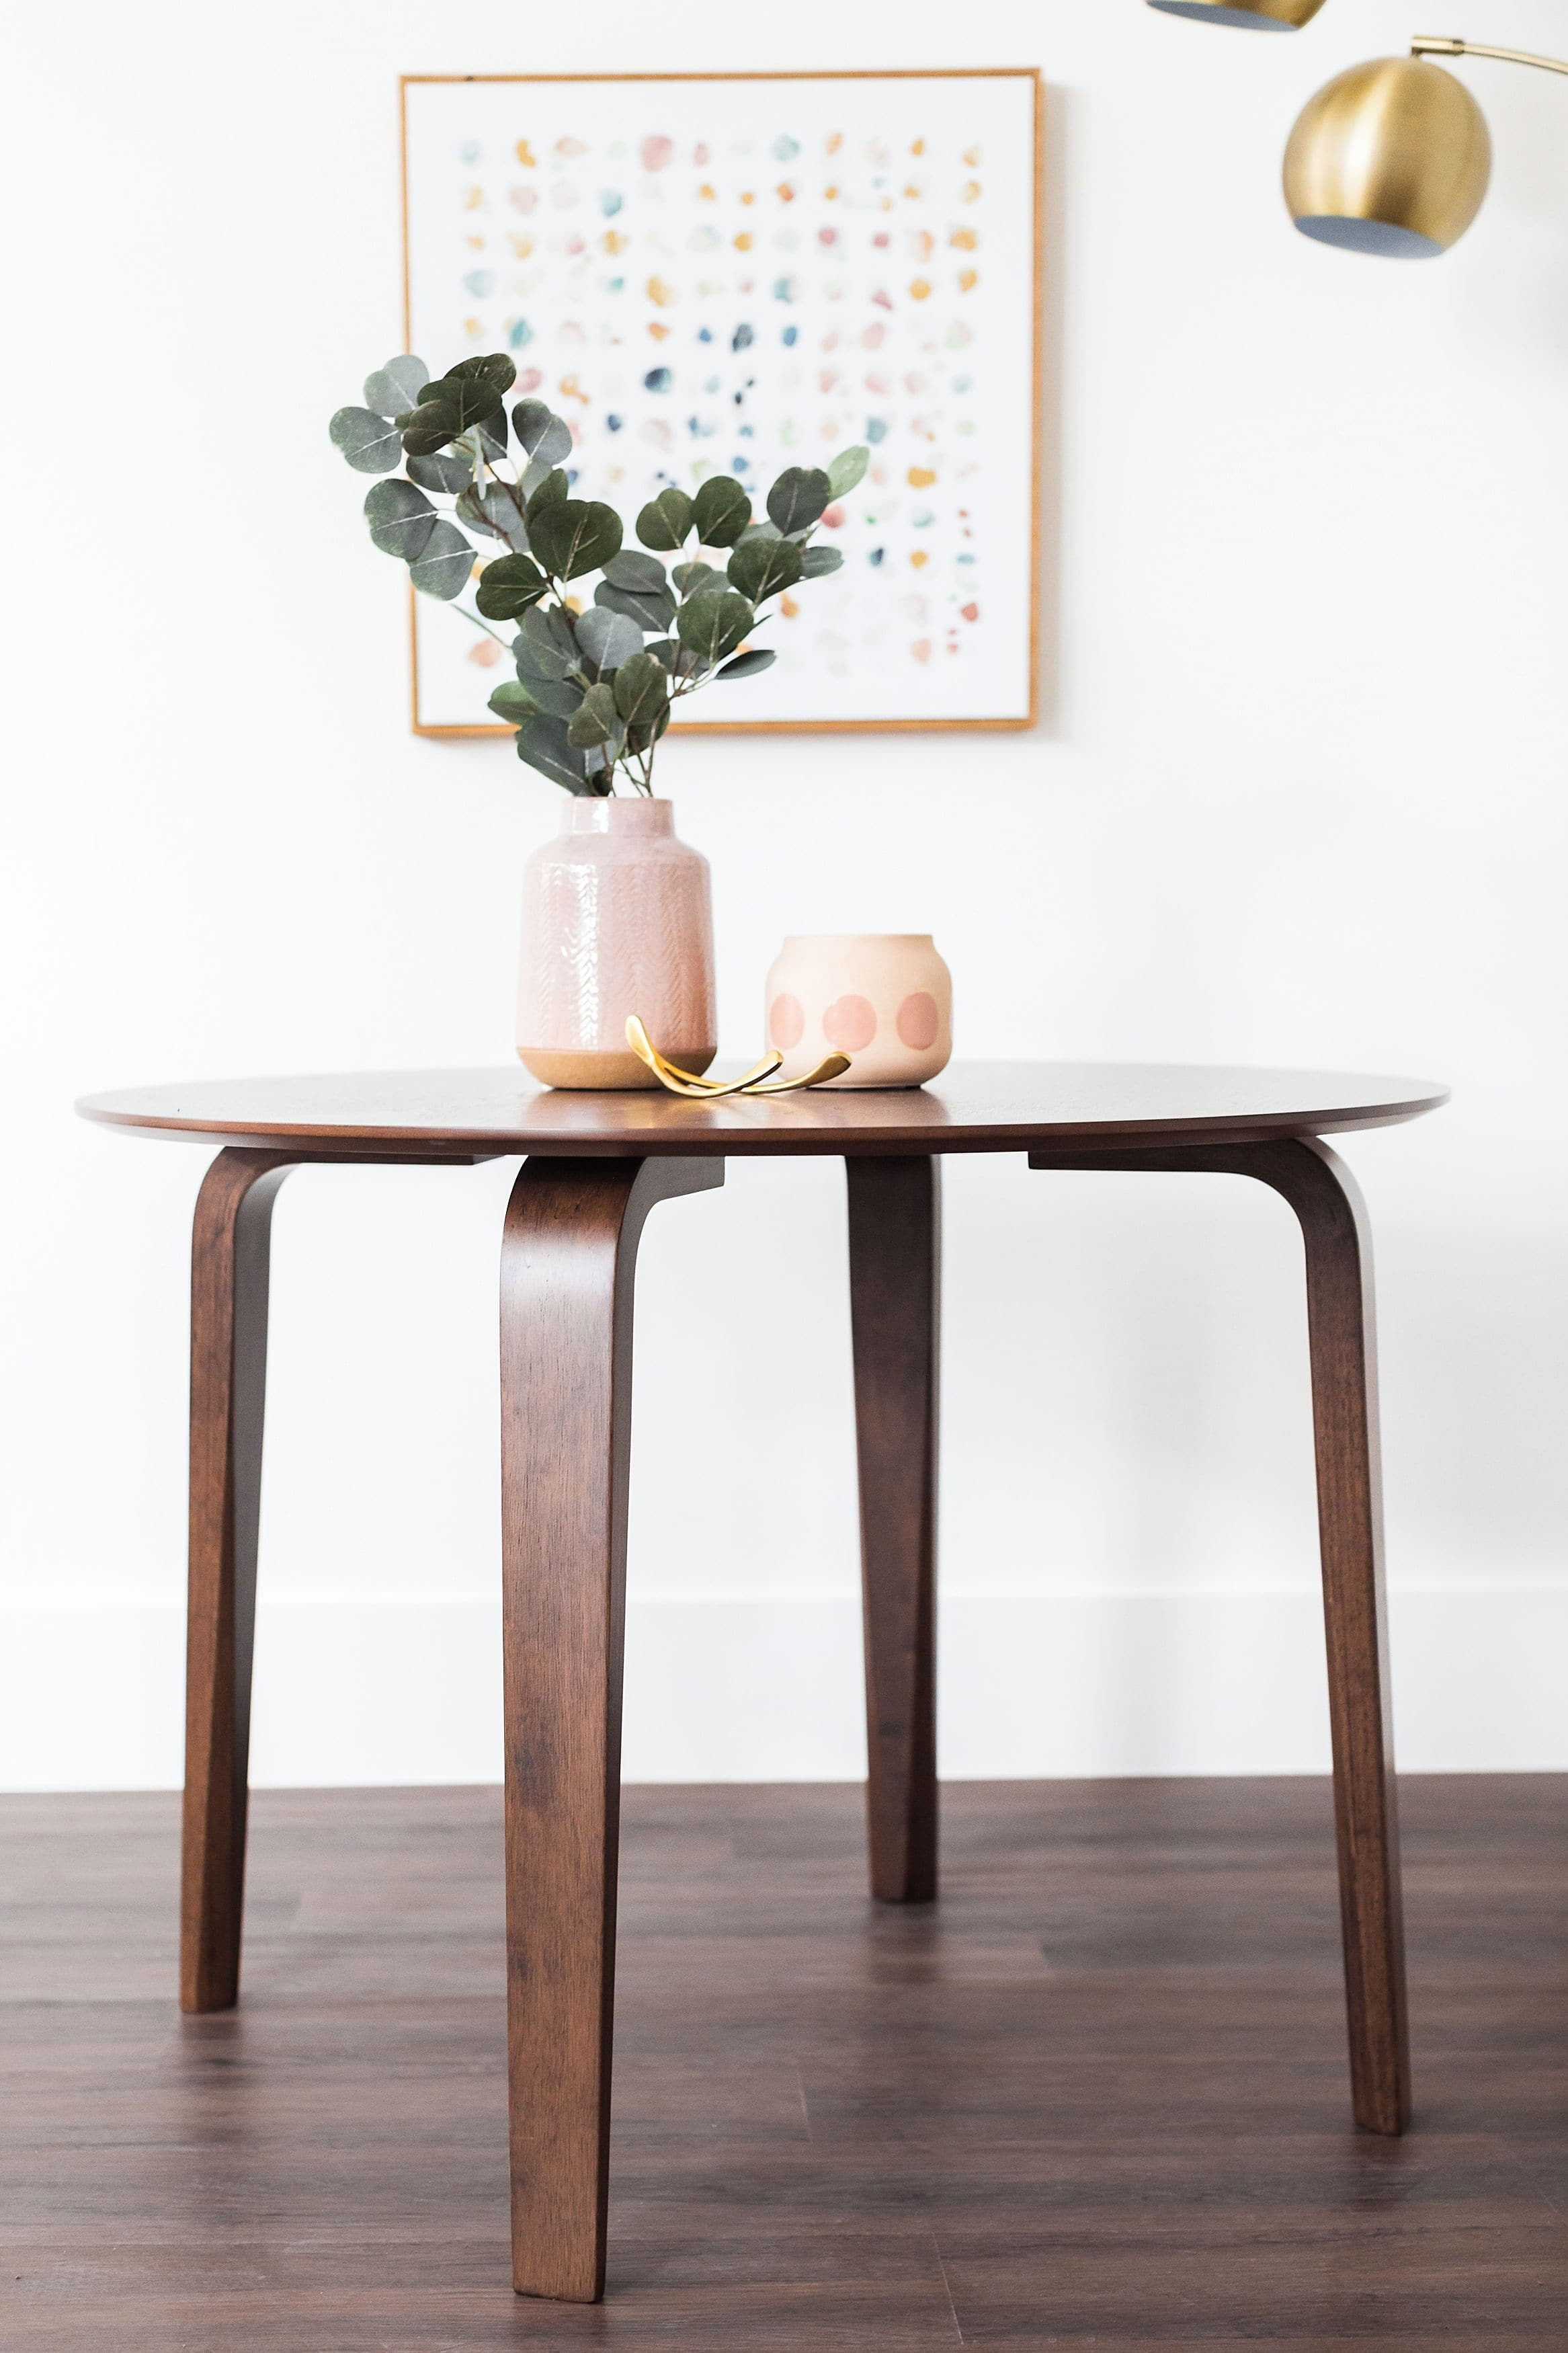 Bali Mid Century Modern Round Dining Table Small Kitchen Table Walnut Edloe Finch Furniture Co